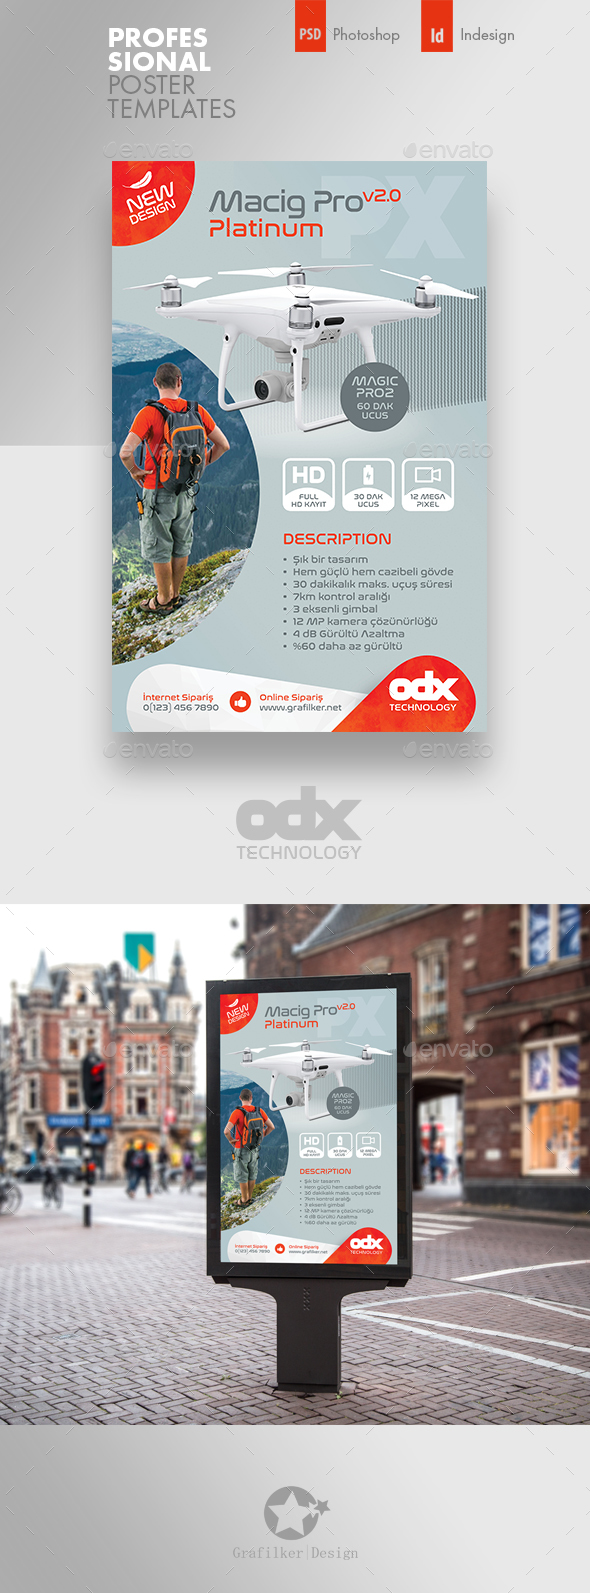 Drone Technology Poster Templates - Signage Print Templates